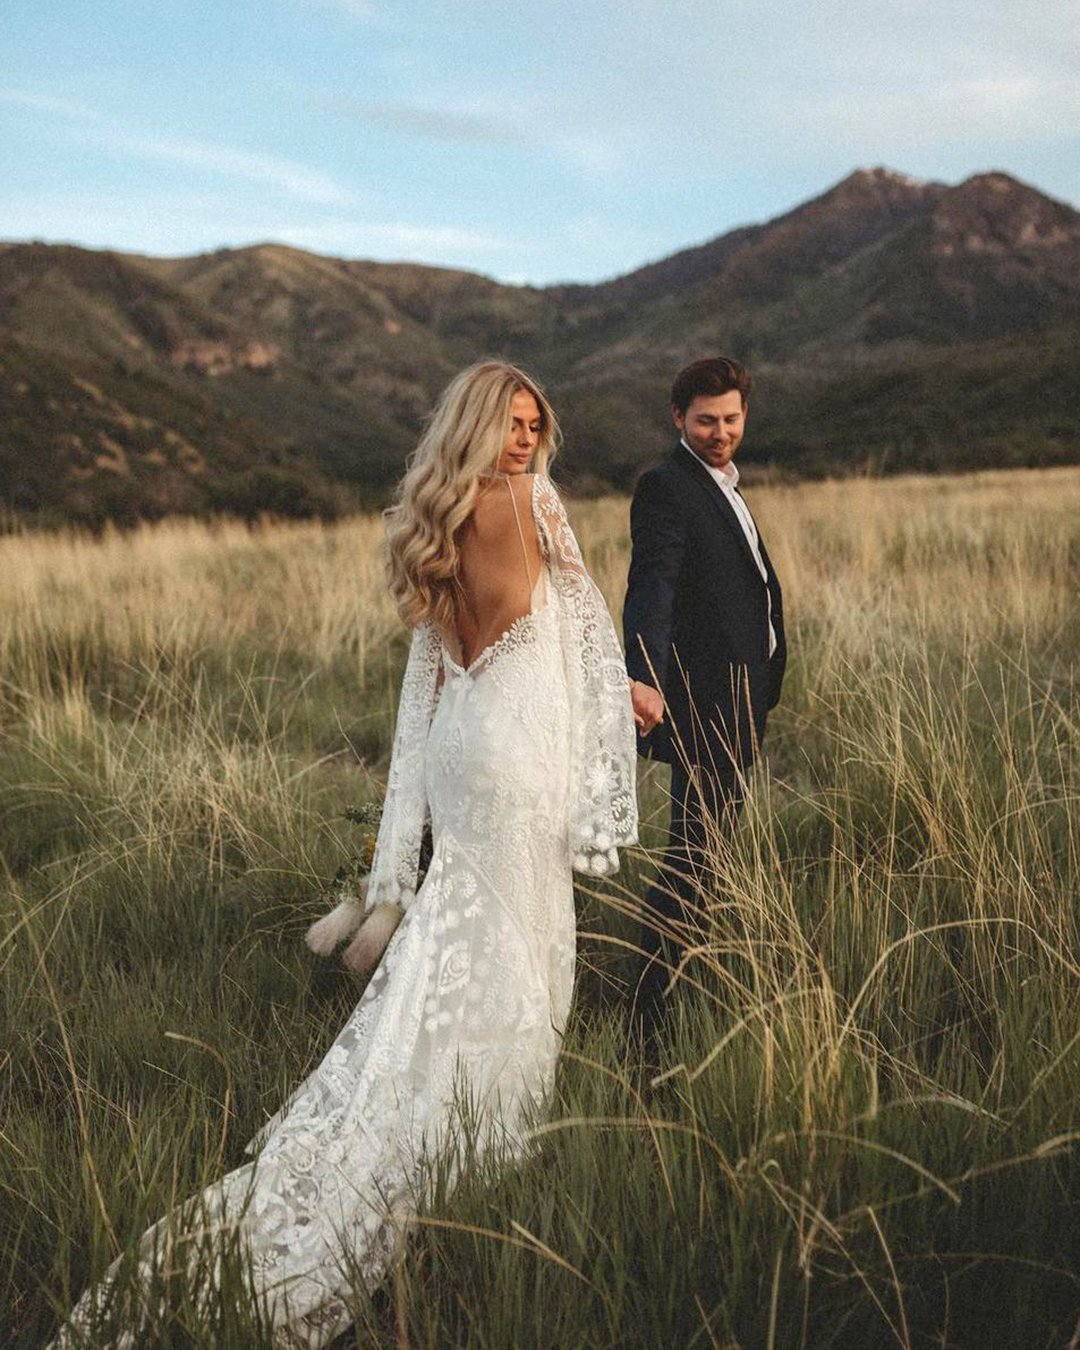 popular instagram posts 2020 bohemian wedding dresses low back jaromandshanessa